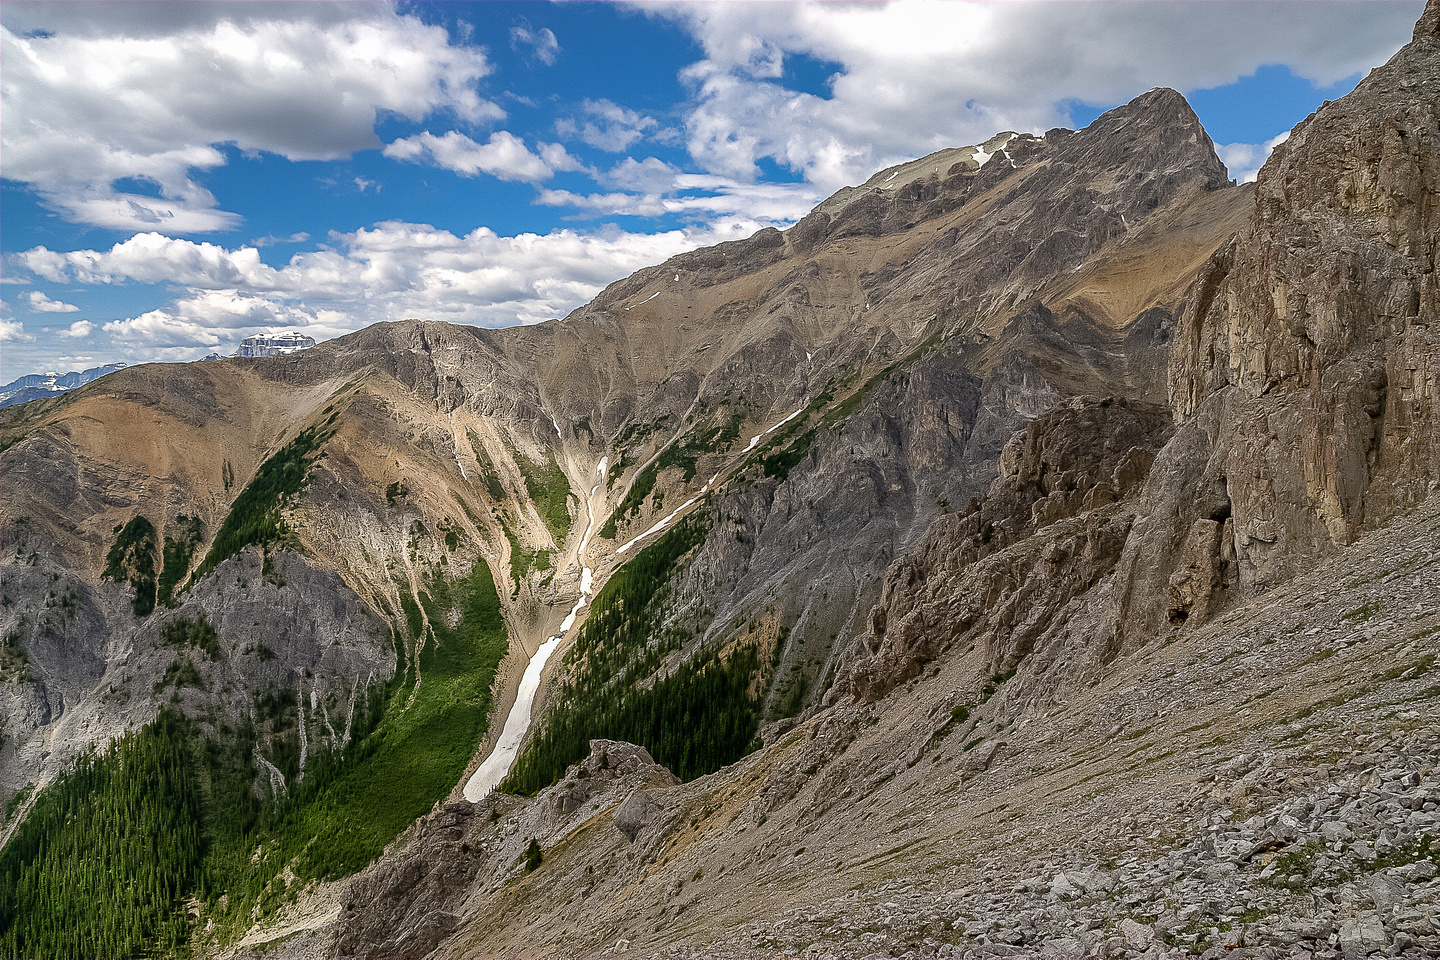 This is the view from the col. I aimed for the promontory at lower left of center and went right.